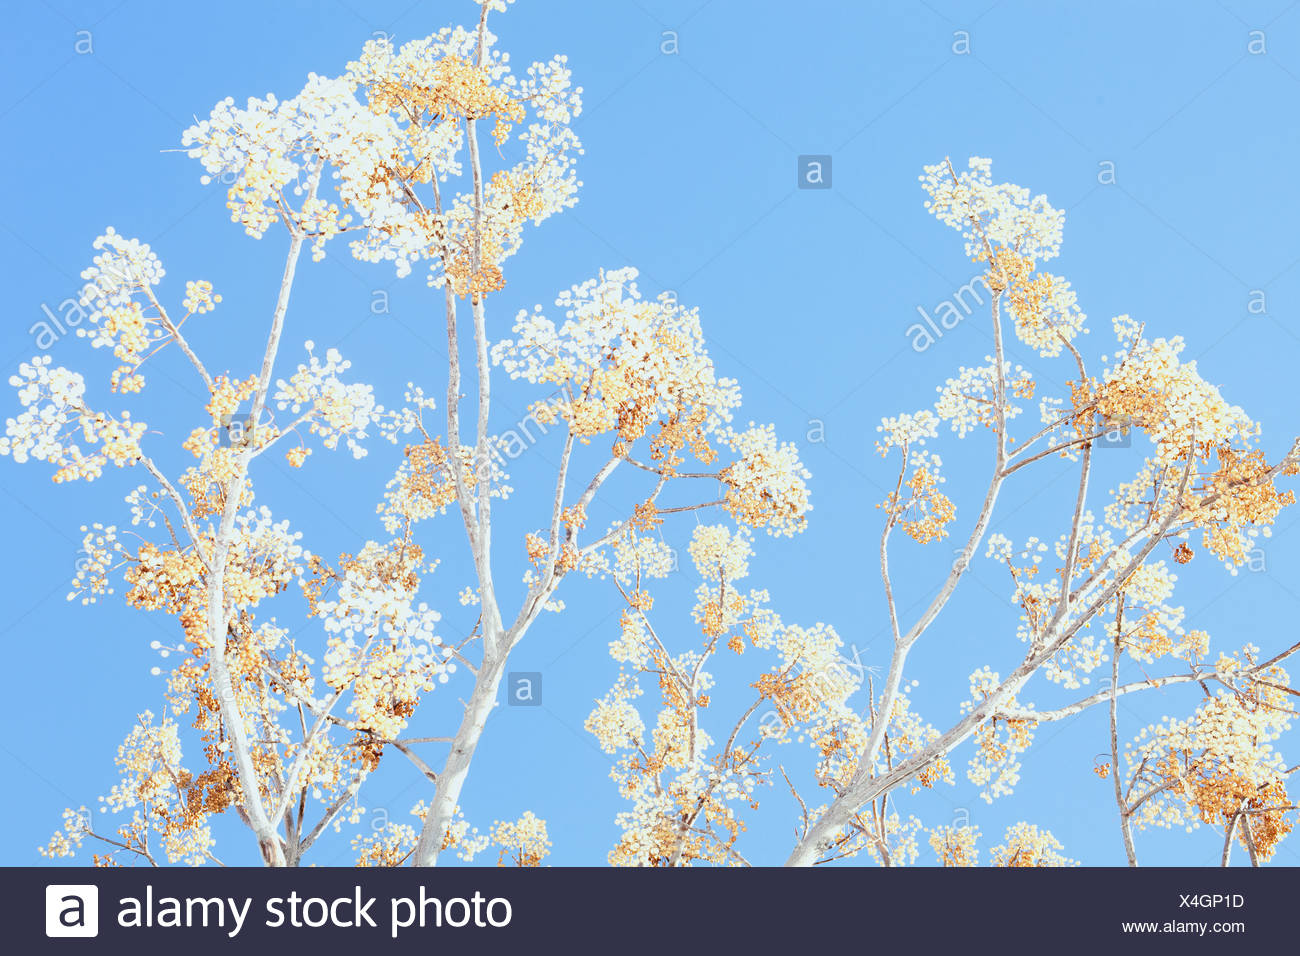 Plant against clear blue sky - Stock Image